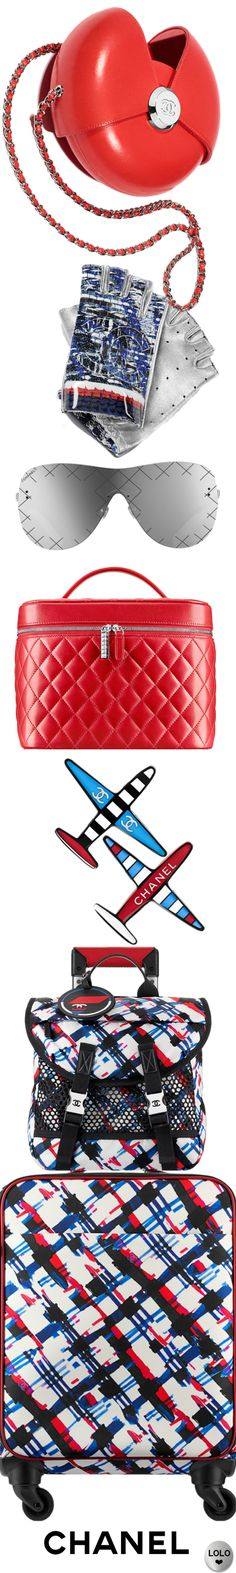 Chanel Spring/Summer 2016 Accessories | LOLO❤︎